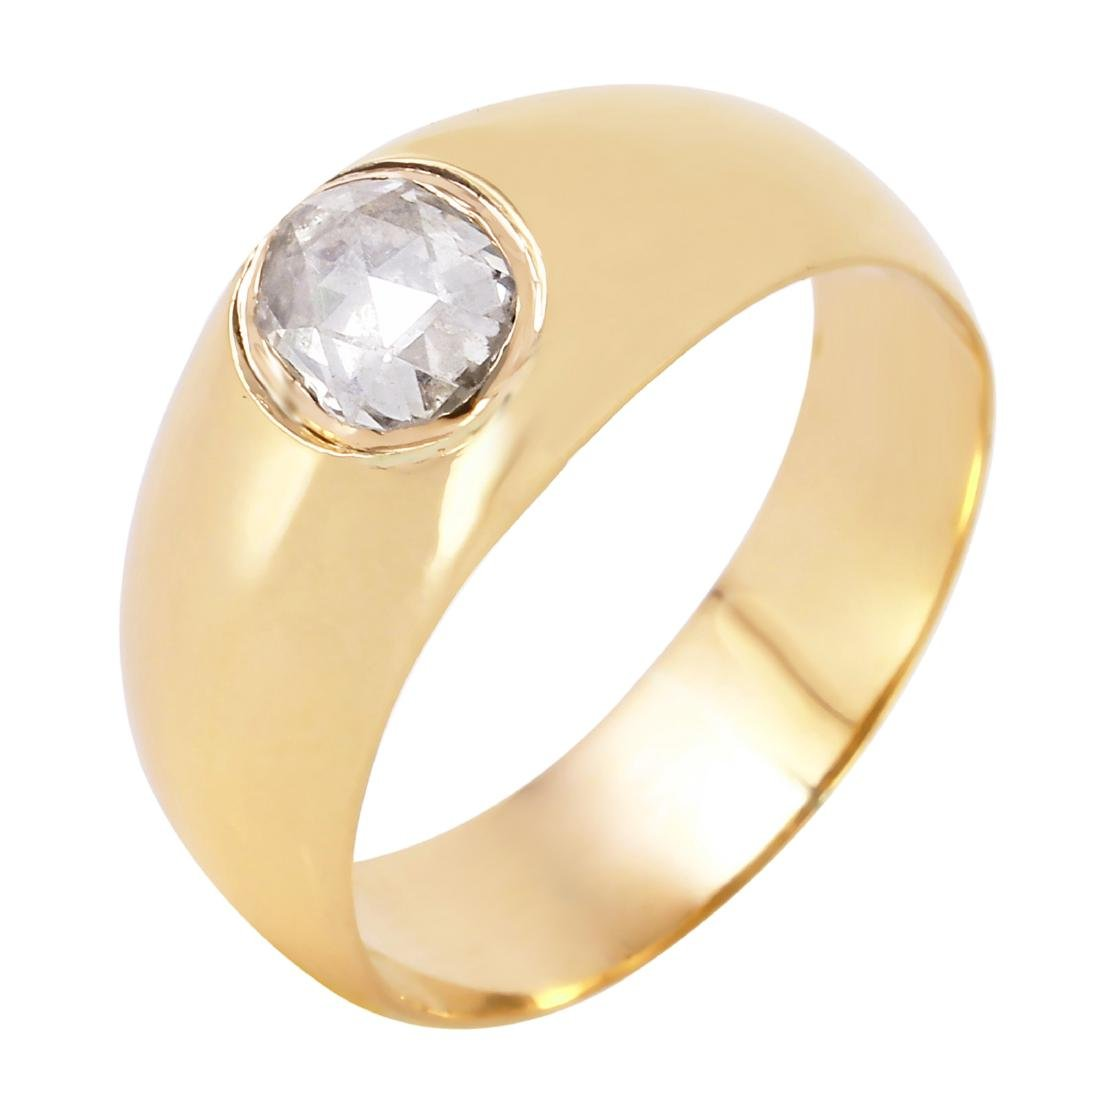 14KT Yellow Gold Soltaire Diamond Ring